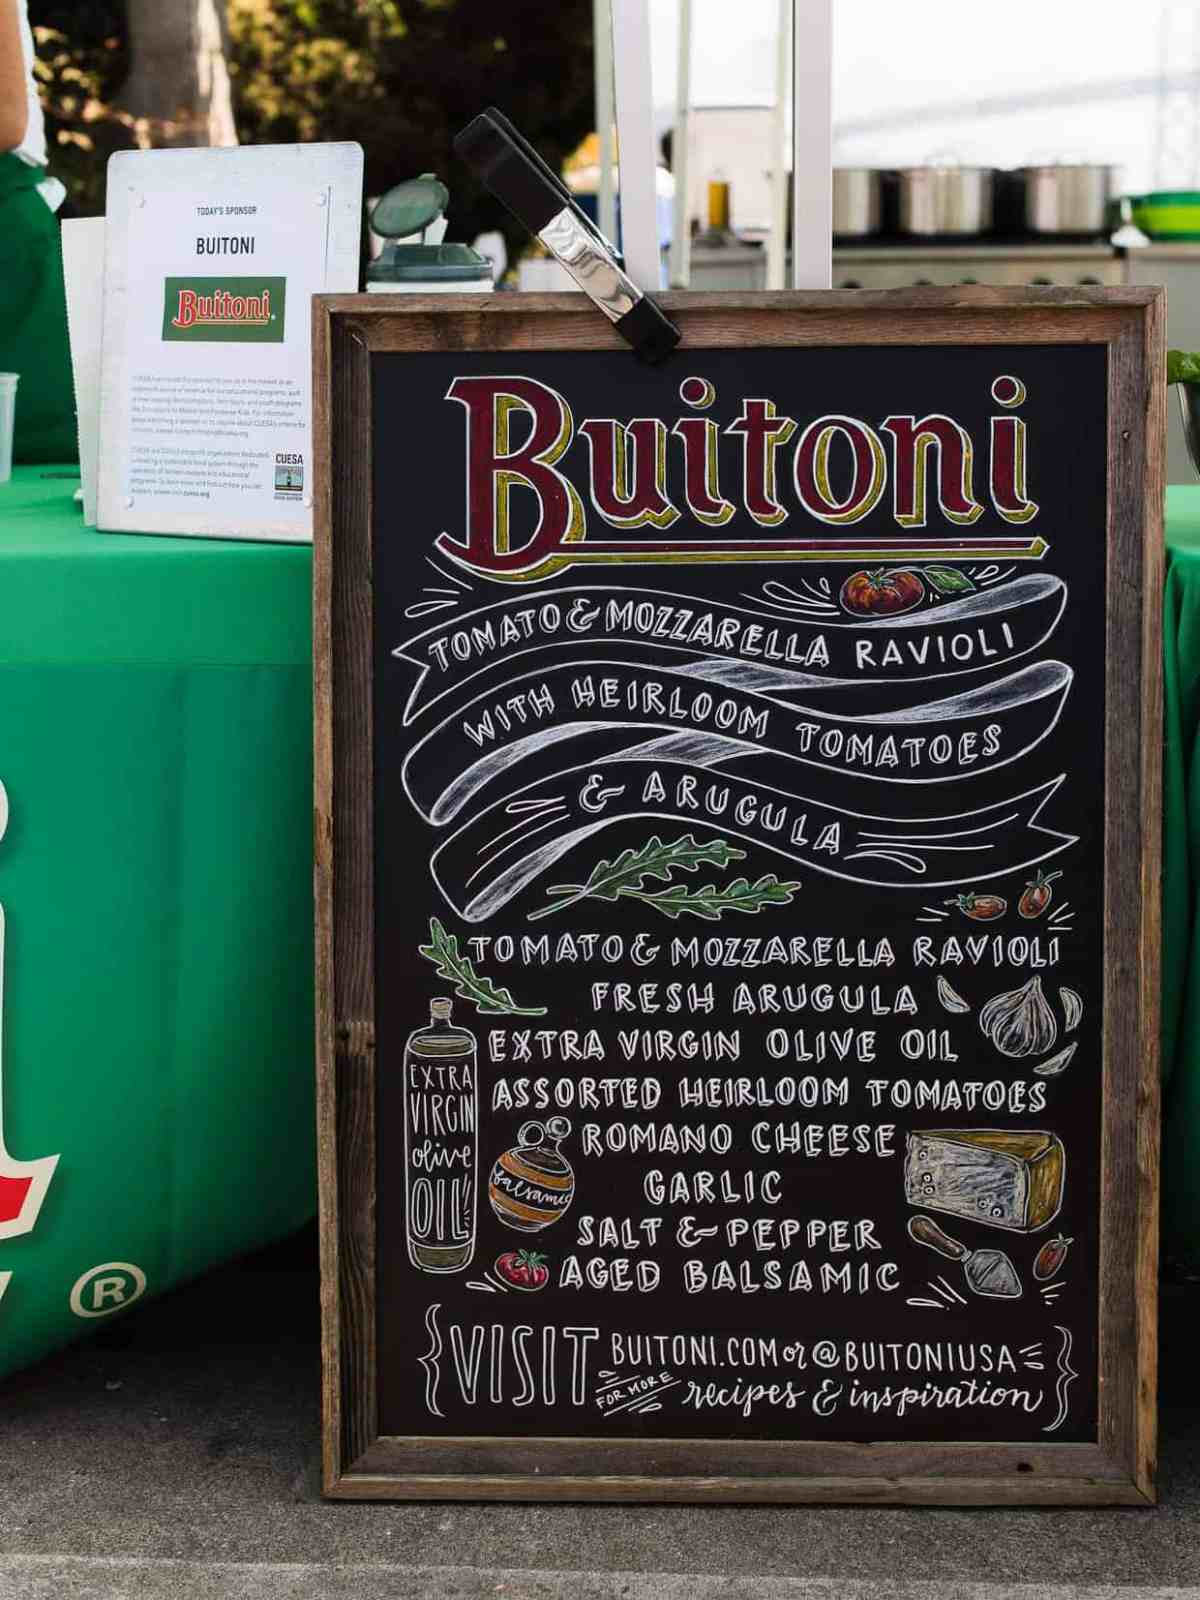 Ingredients for Buitoni recipe demo at Ferry Building Farmer's Market in San Francisco.